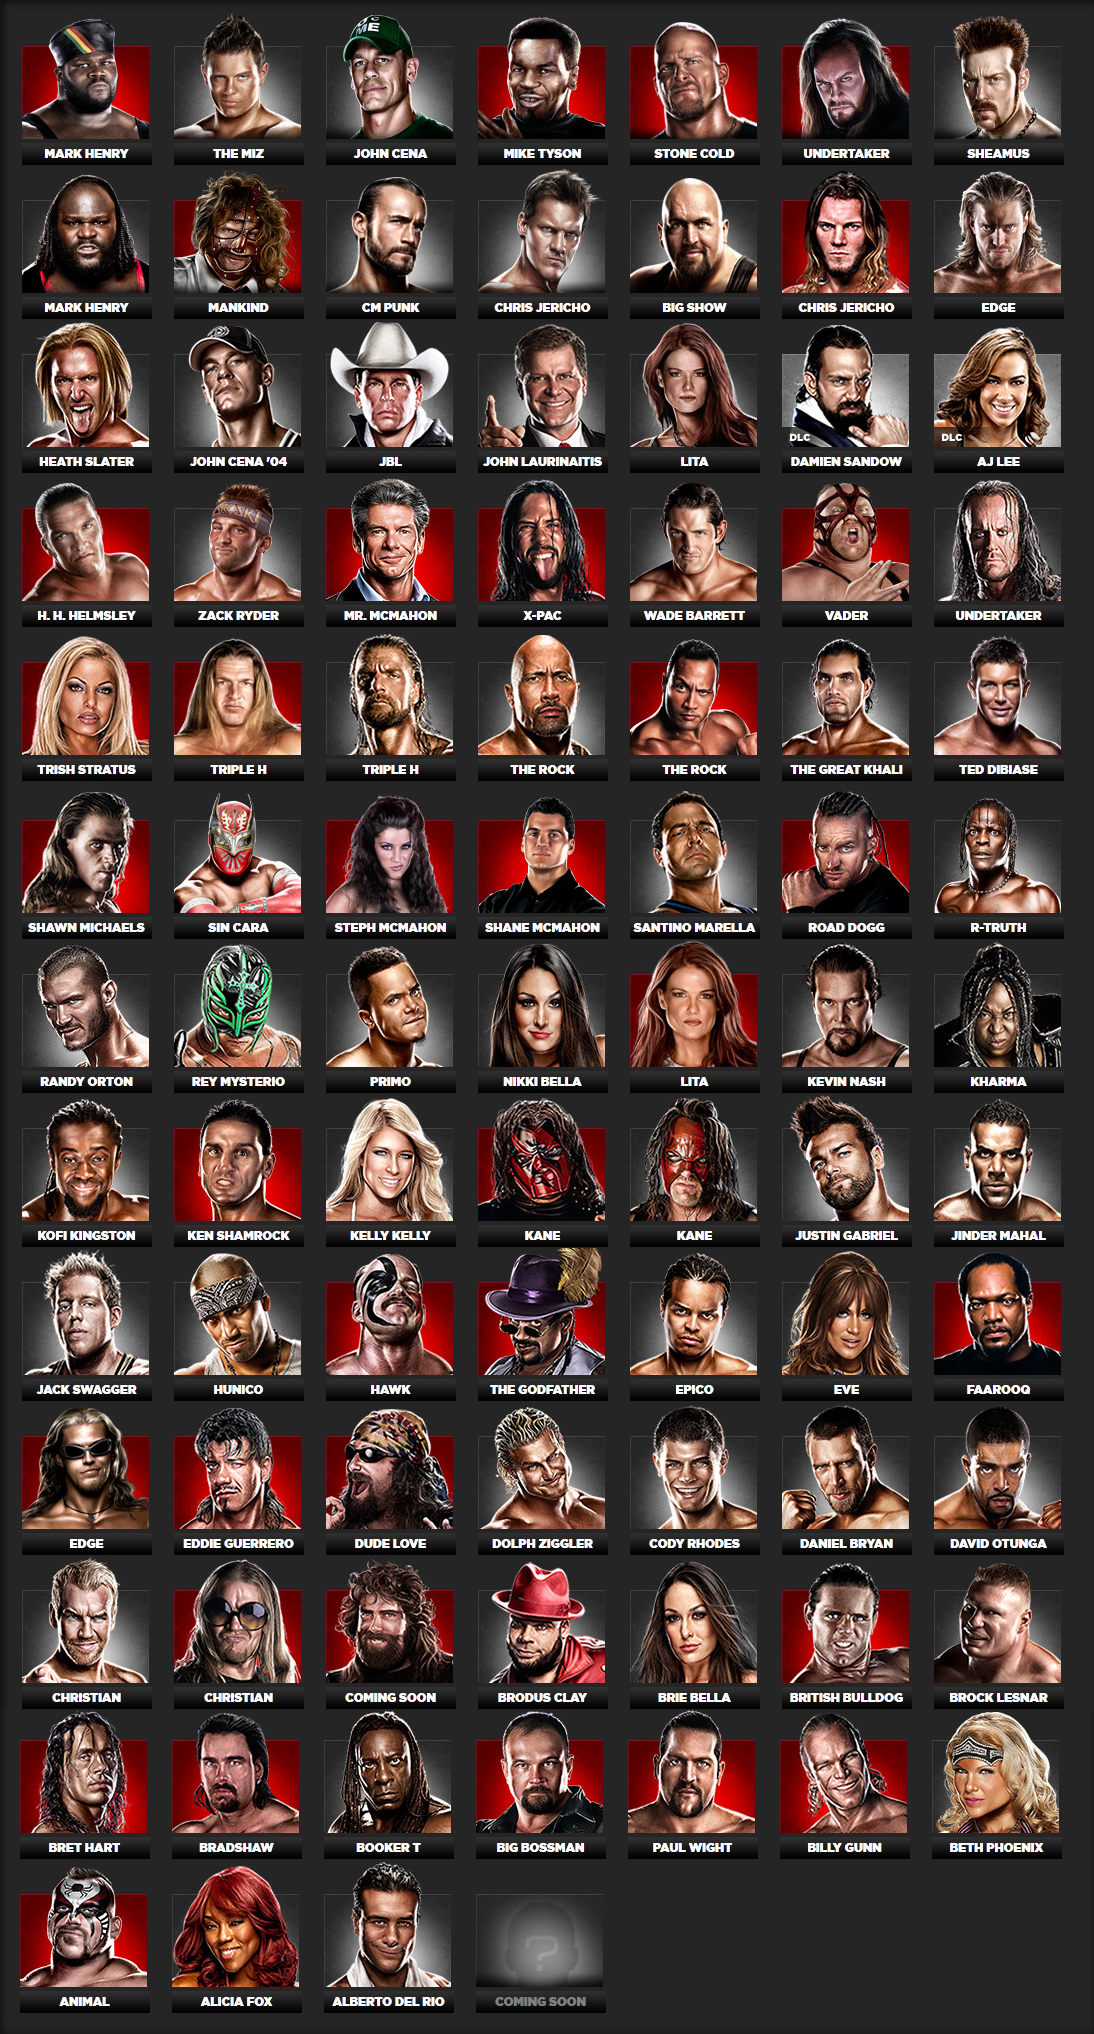 wwe 13 roster